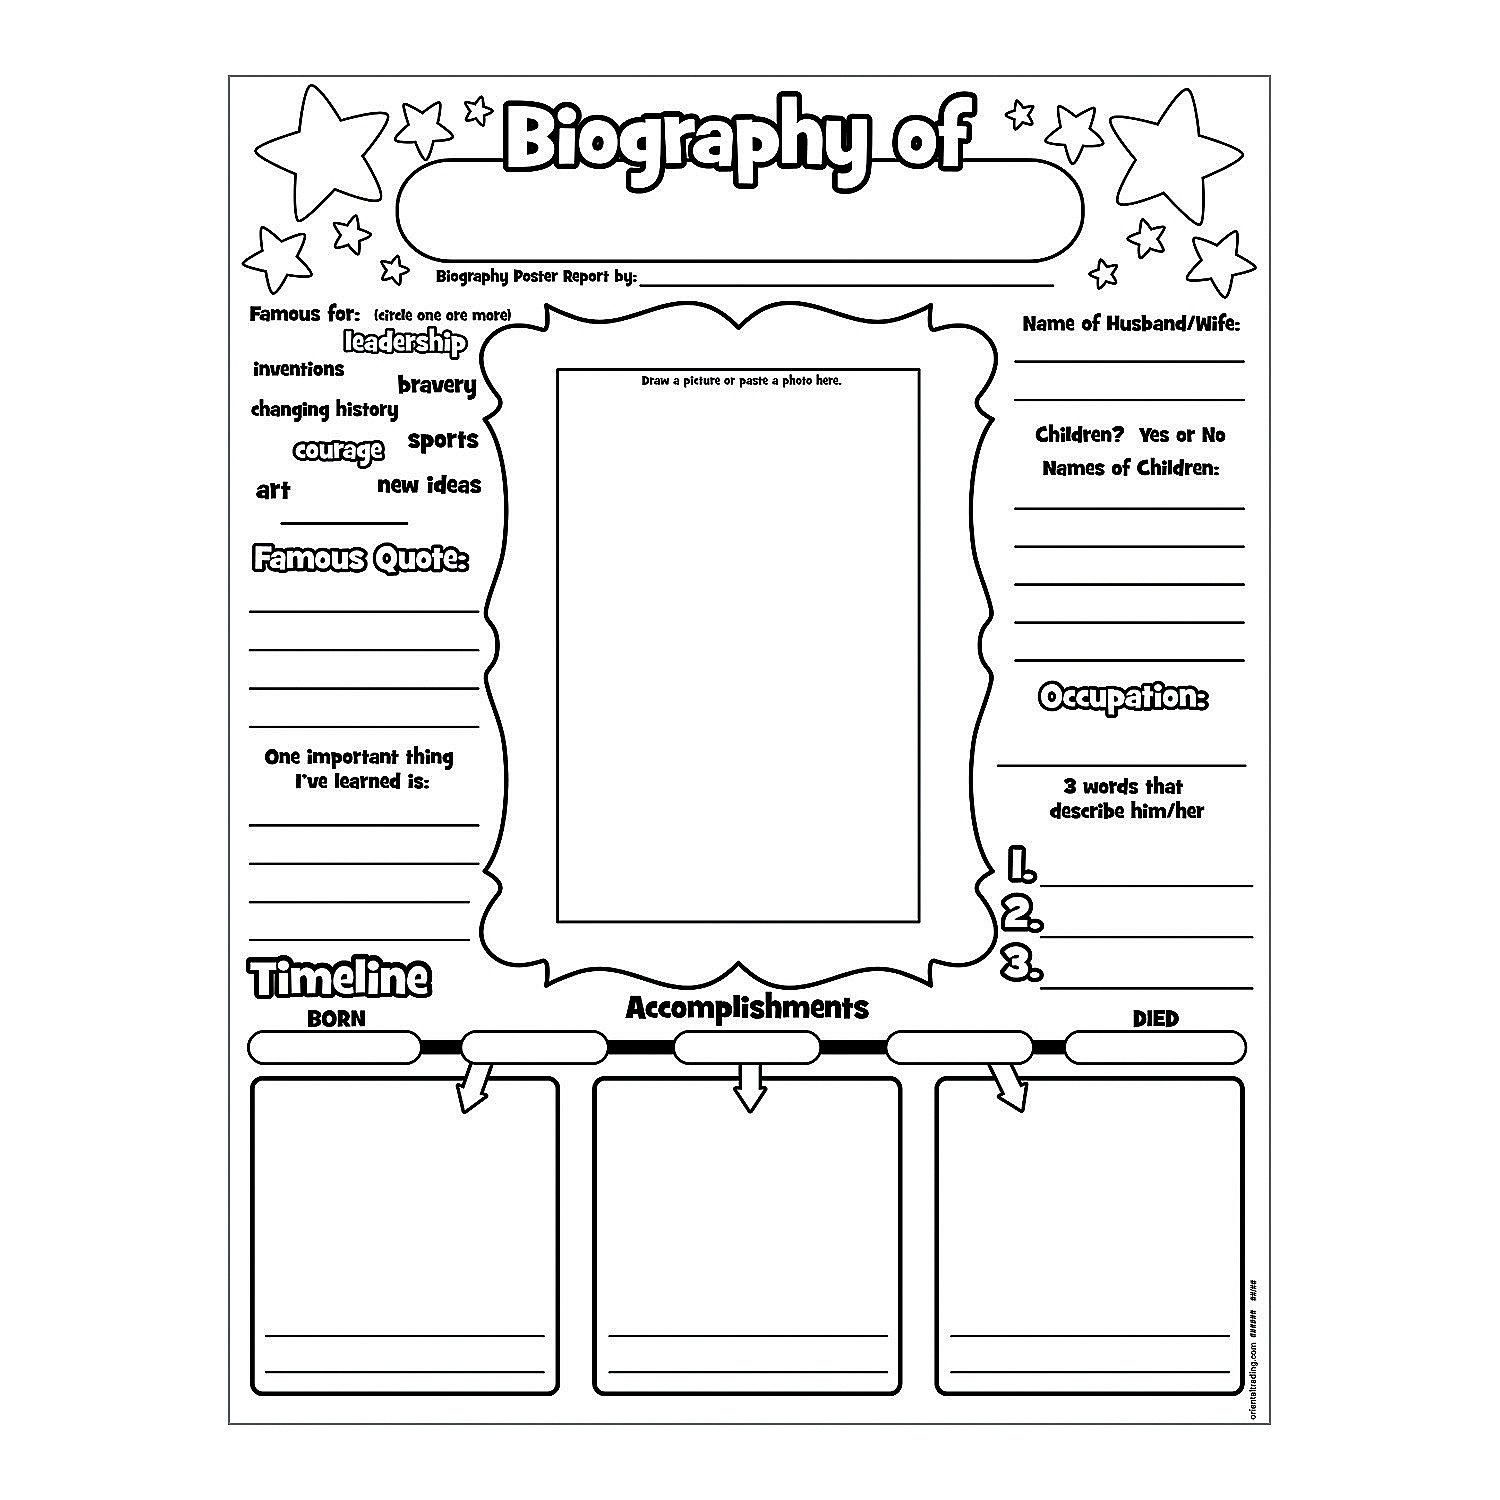 Color Your Own All About A Biography Posters